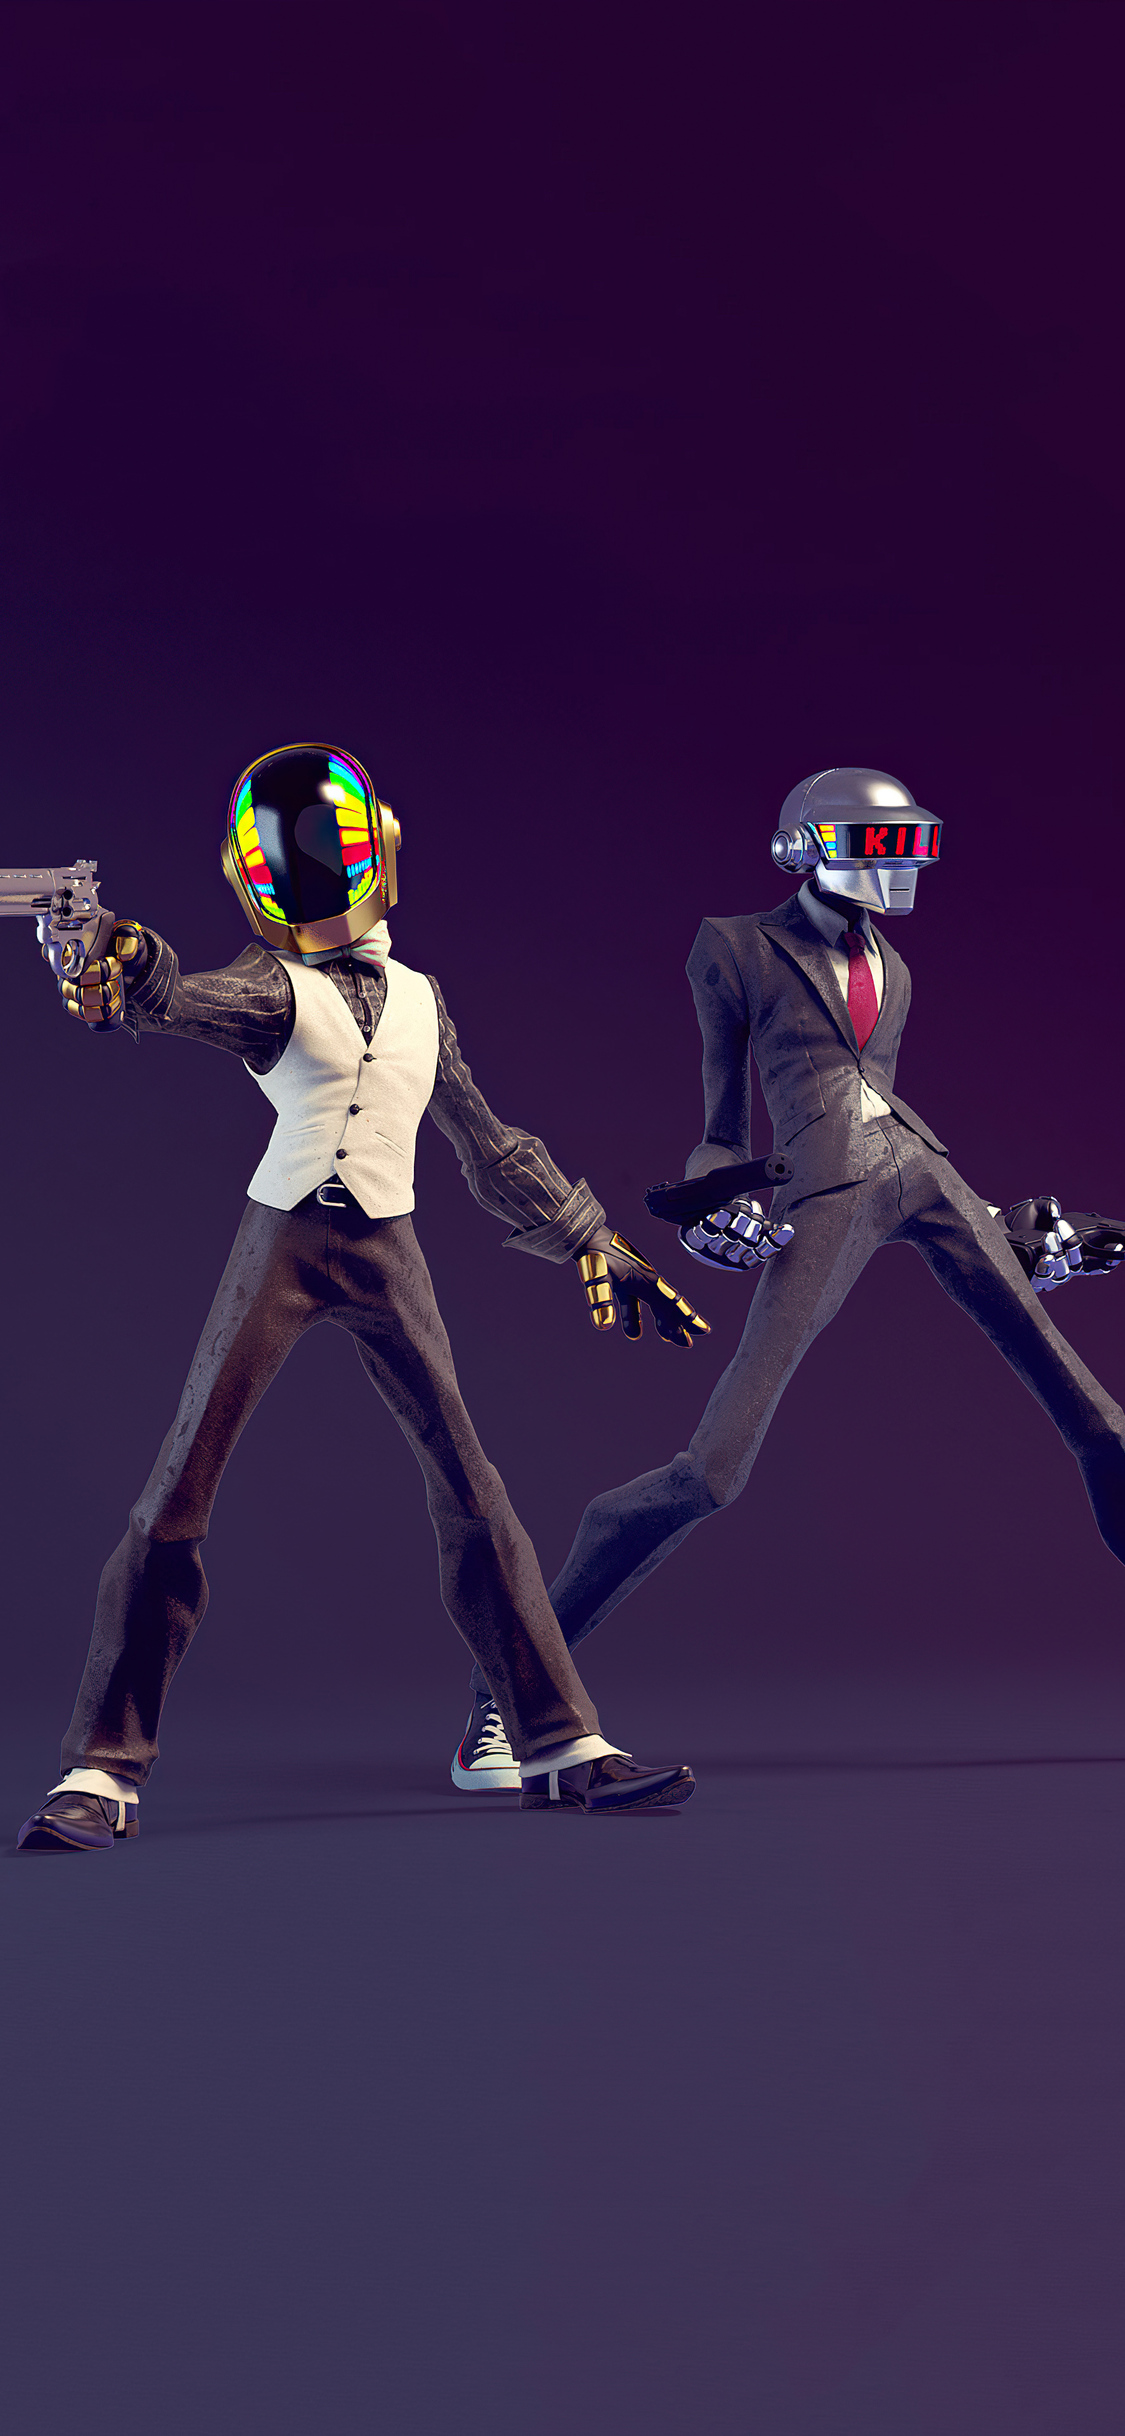 1125x2436 Daft Punk Do You Feel Lucky 4k Iphone XS,Iphone ...